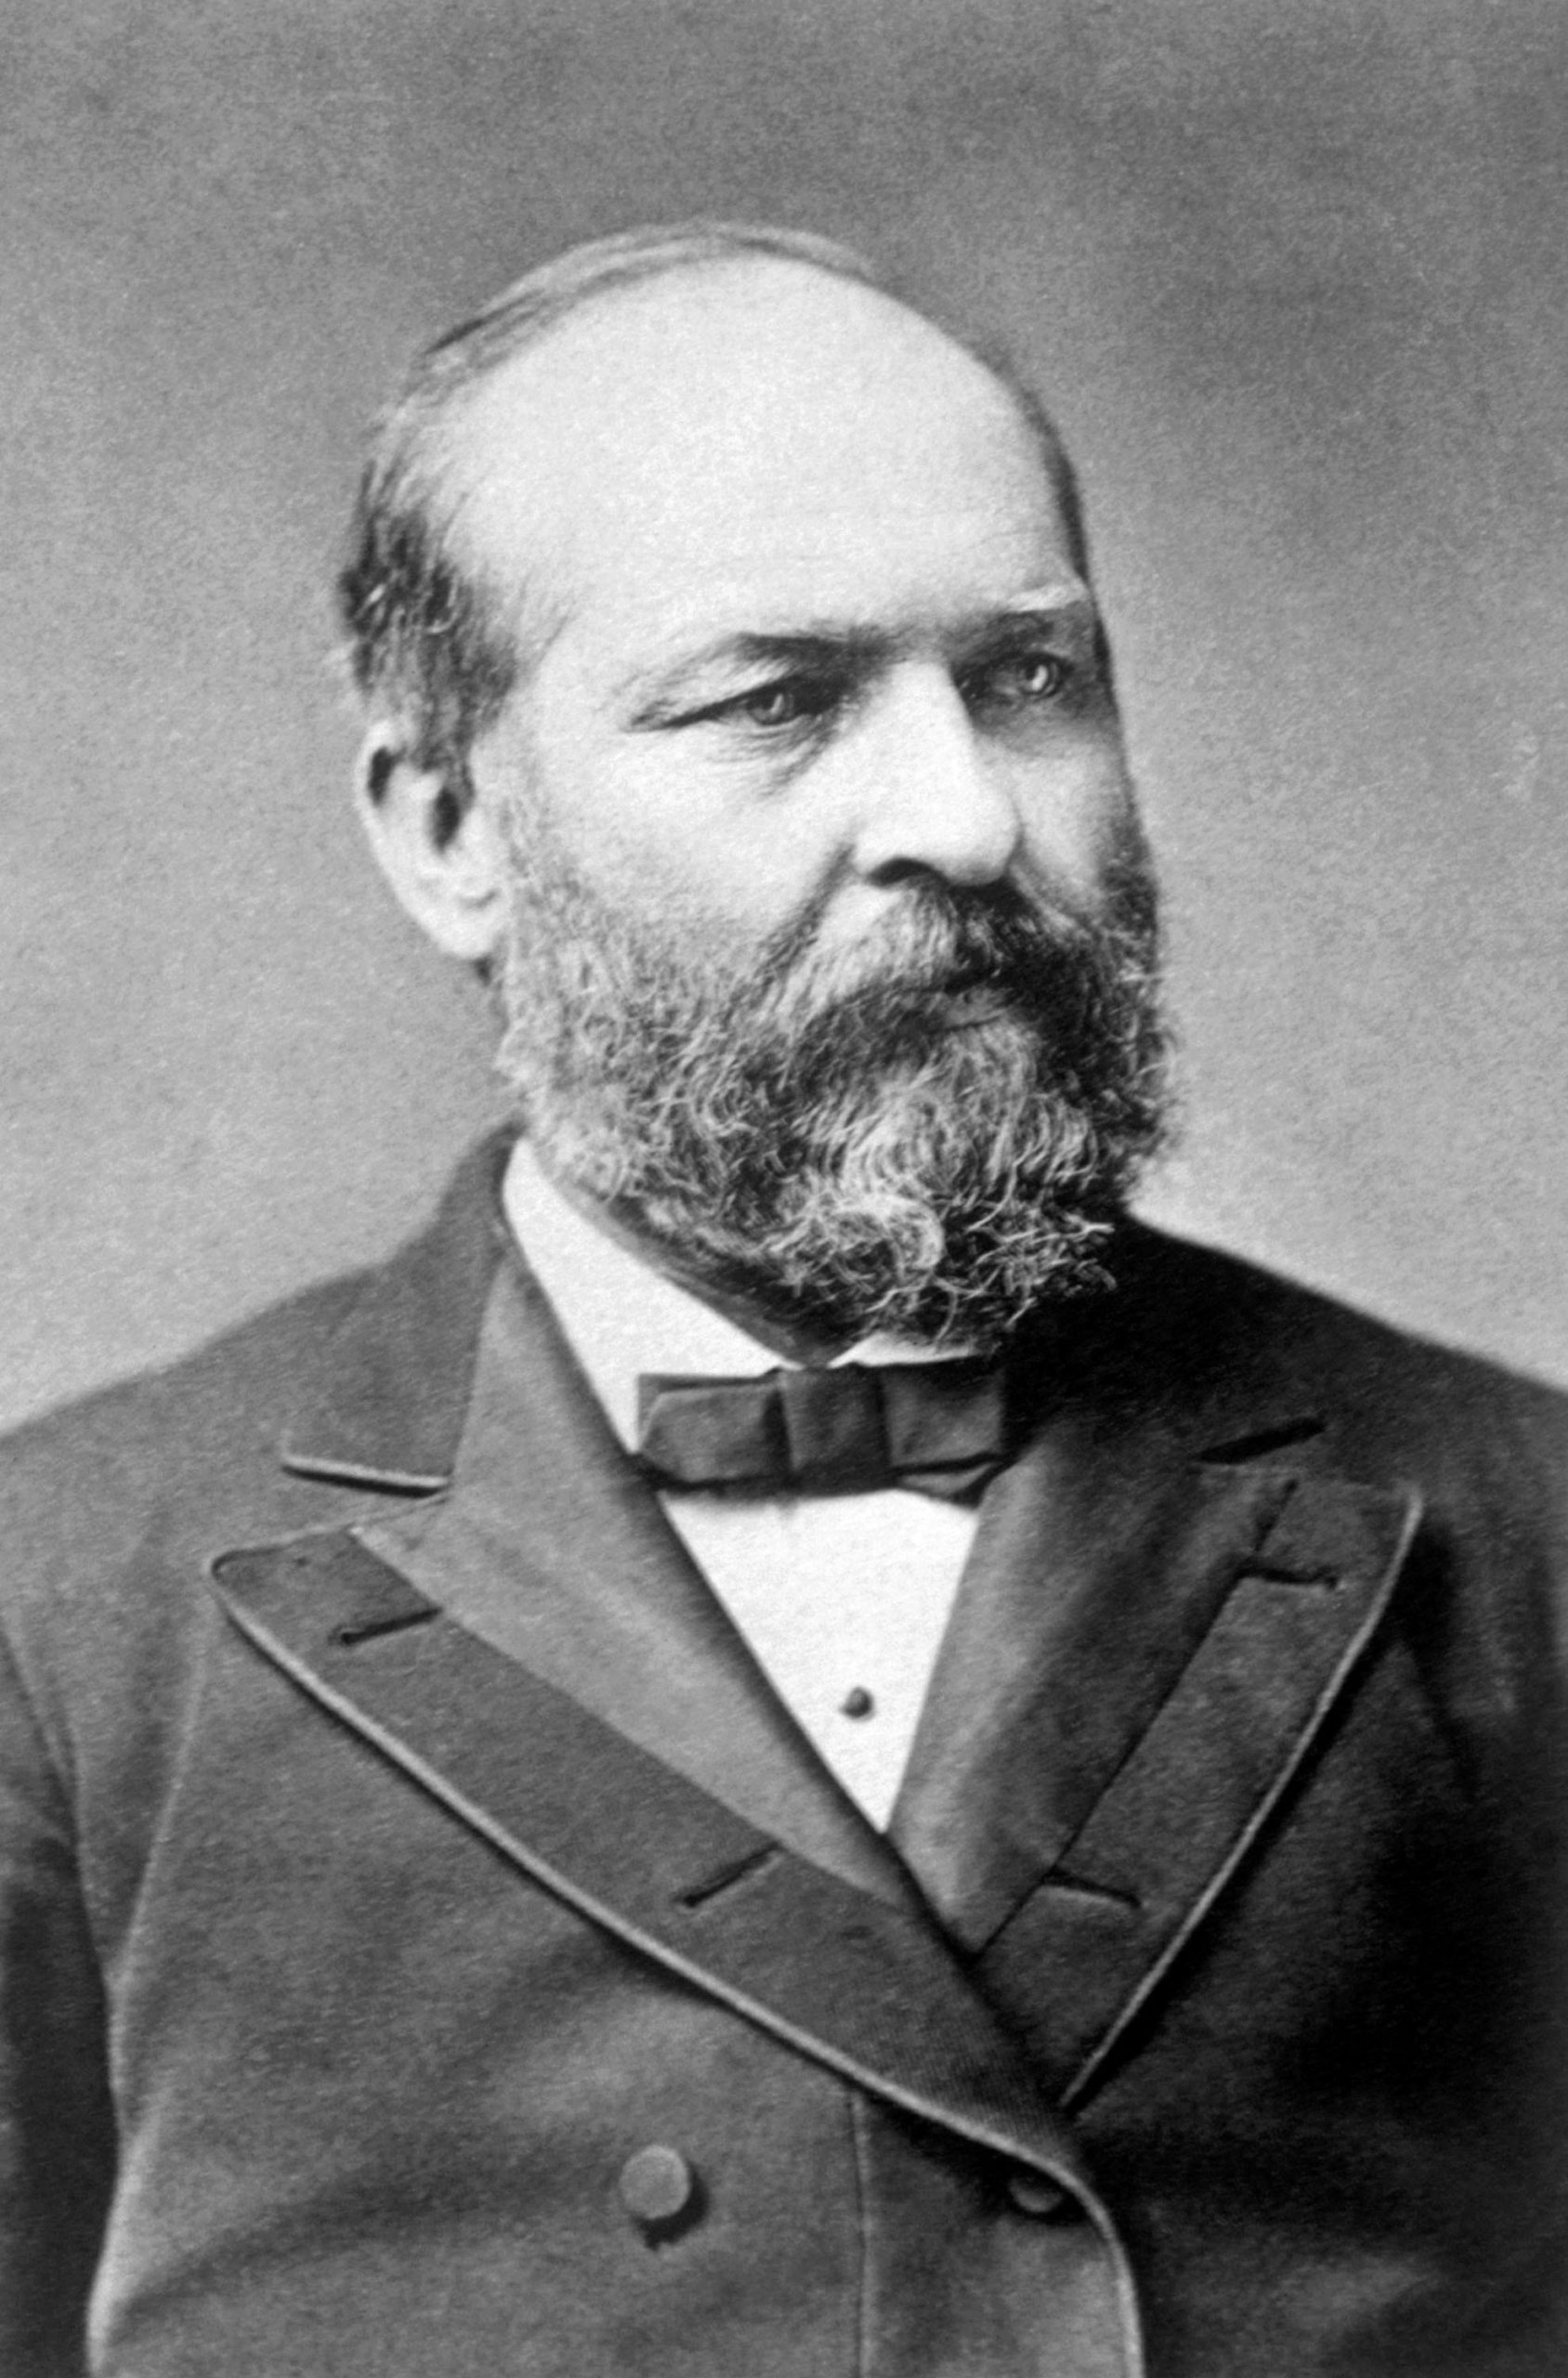 He entered politics as a Republican in 1857. He served as a member of the Ohio State Senate from 1859 to 1861. He opposed Confederate secession, served as a major general in the Union Army during the American Civil War, and fought in the battles of Middle Creek, Shiloh, and Chickamauga.  He was fatally shot at the Baltimore and Potomac Railroad Station in Washington, D.C. on July 2, 1881. ... His assassin was Charles J. Guiteau.